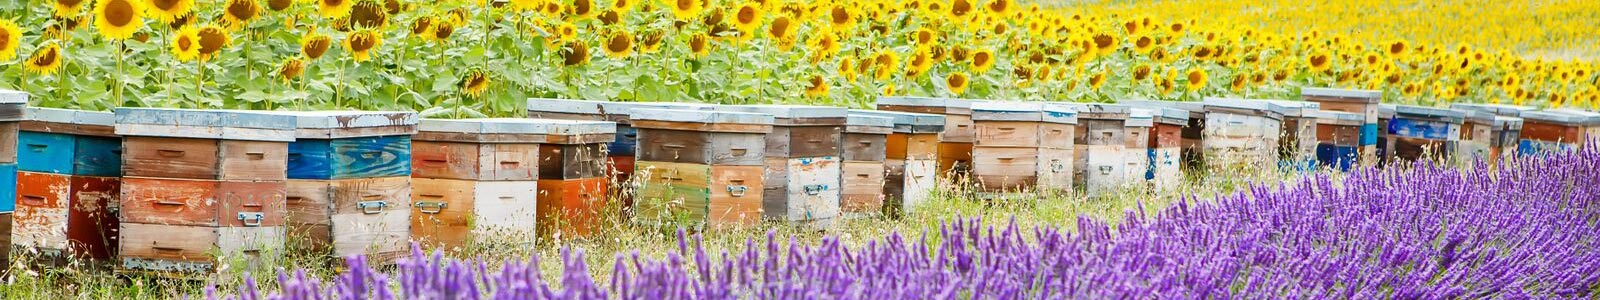 beehive boxes in field of sunflowers and lavender produce fragrant beeswax for candles